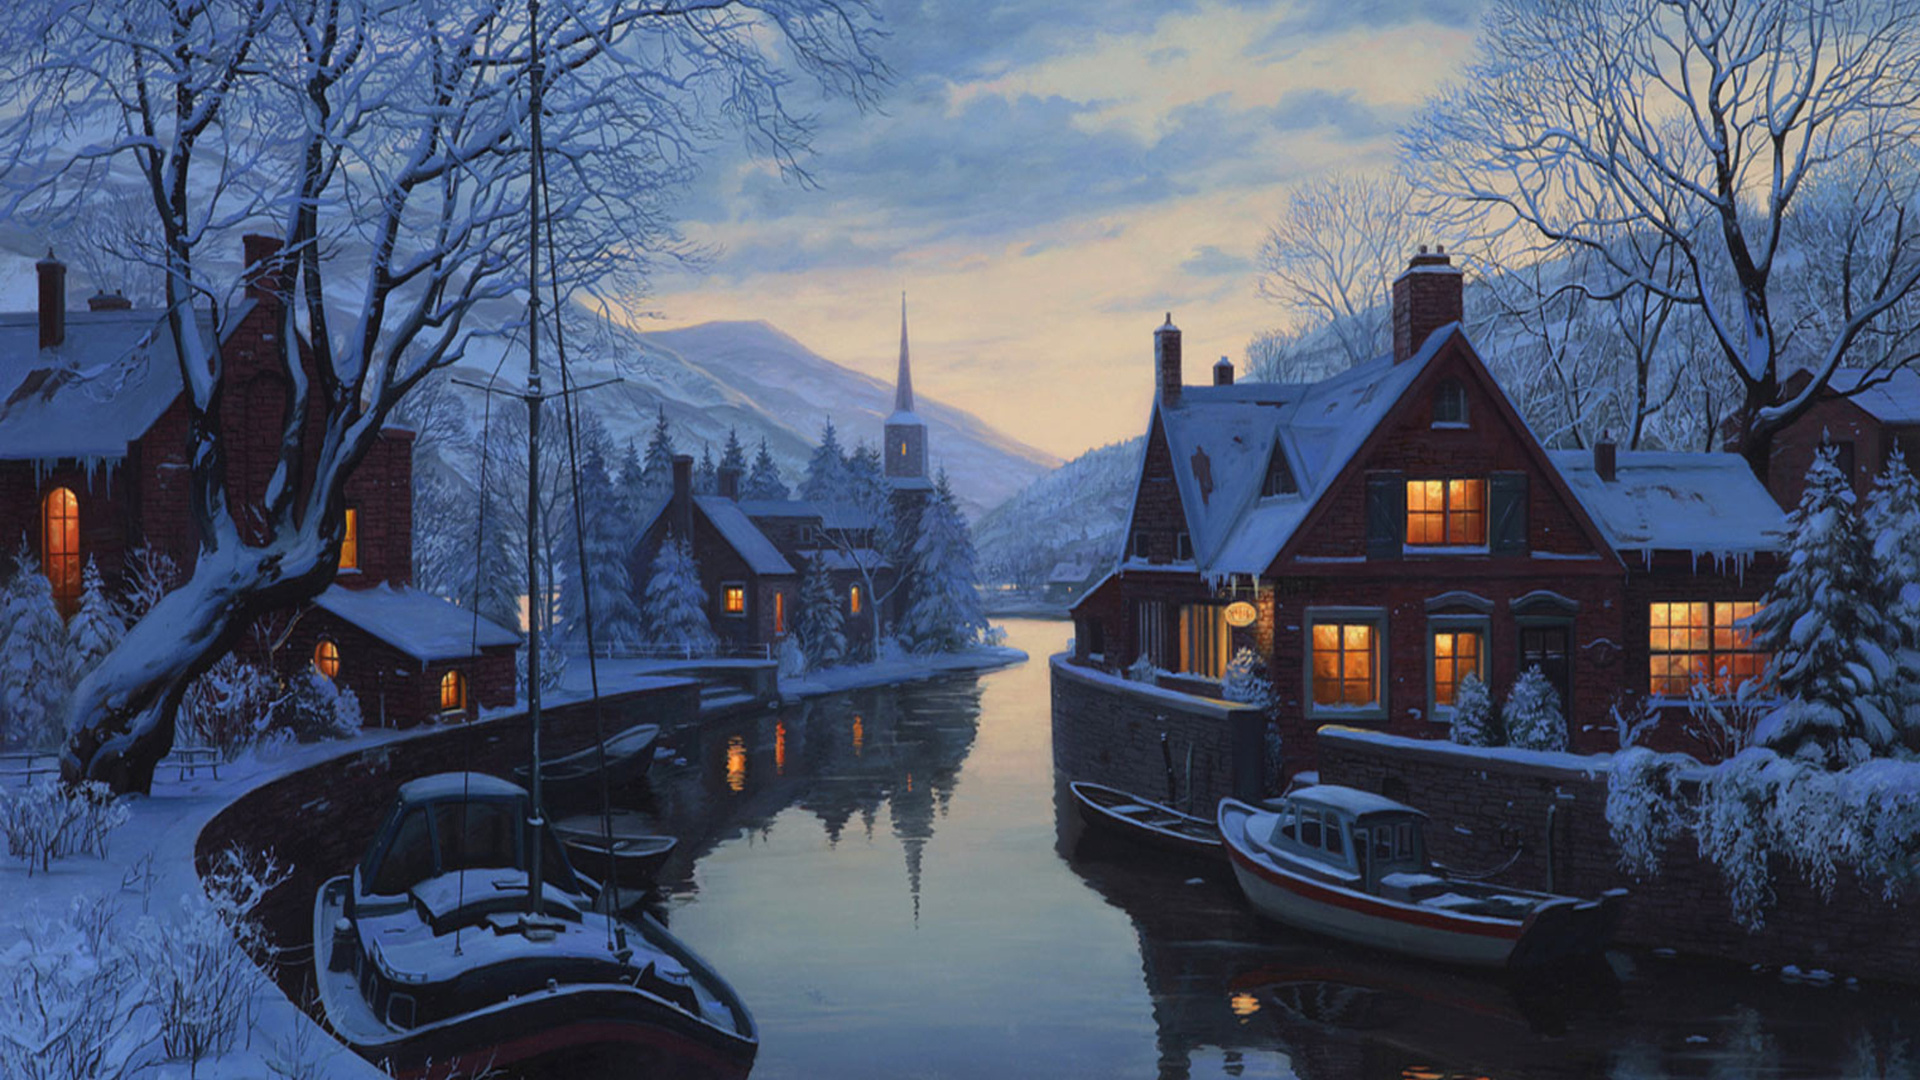 An old inn by the river, painting, winter, chapel, eugeny lushpin, houses, lushpin, snow, trees